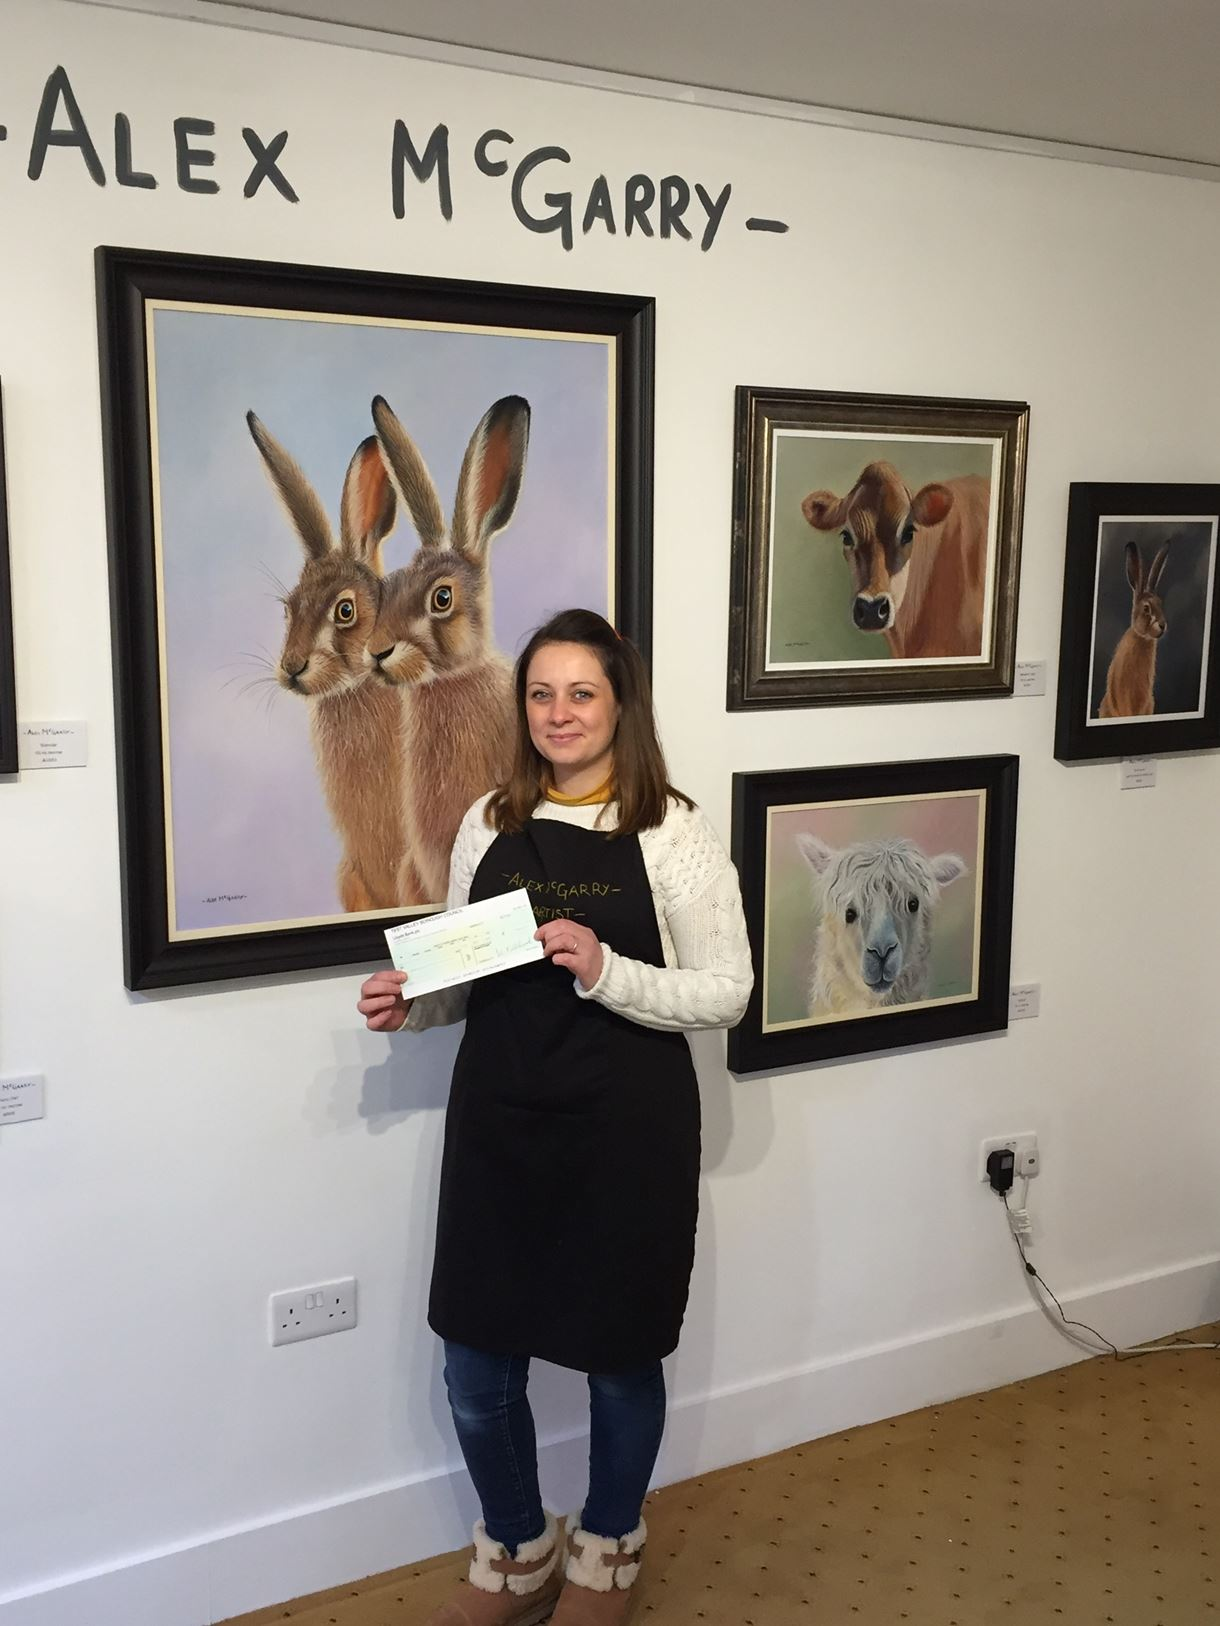 Alex McGarry in her studio in Waterloo Court, Andover, with the grant awarded by the council.